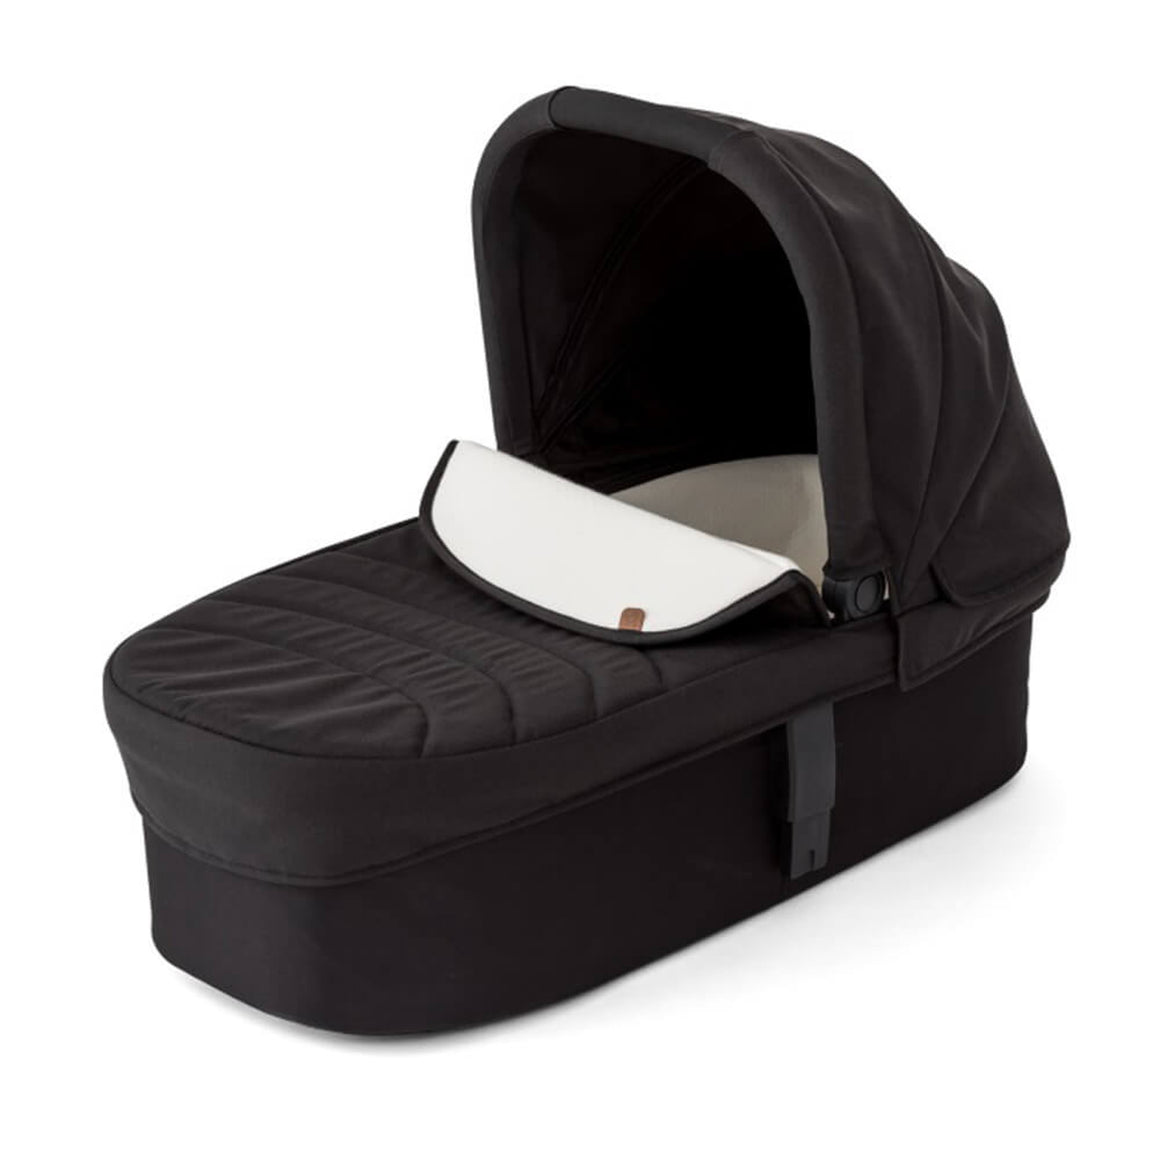 Edwards & Co Oscar Mx Carry Cot-Prams Strollers - Bassinets-Baby Little Planet